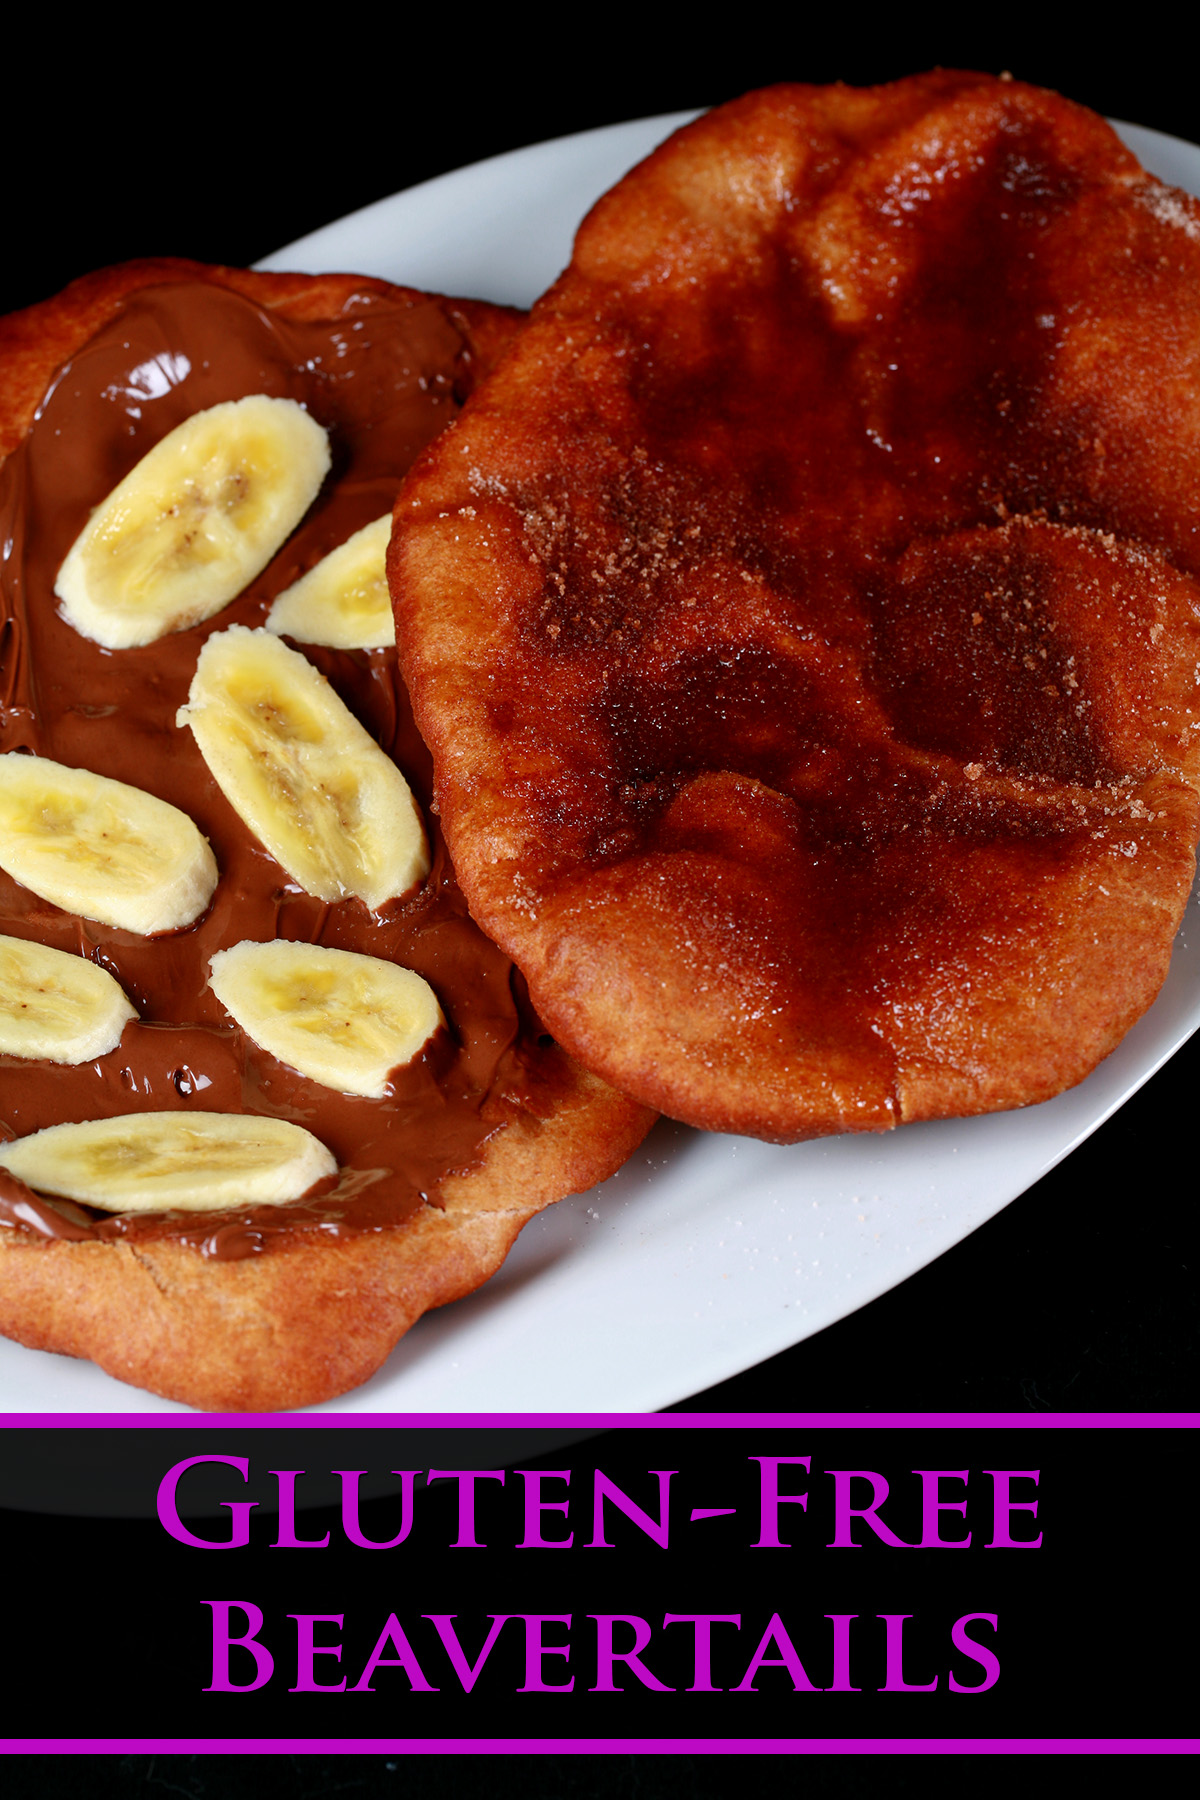 Two gluten-free beaver tail pastries are arranged on a plate. Both are oblong pieces of fried dough. One is topped with cinnamon sugar, the other is spread with Nutella and topped with sliced banana.